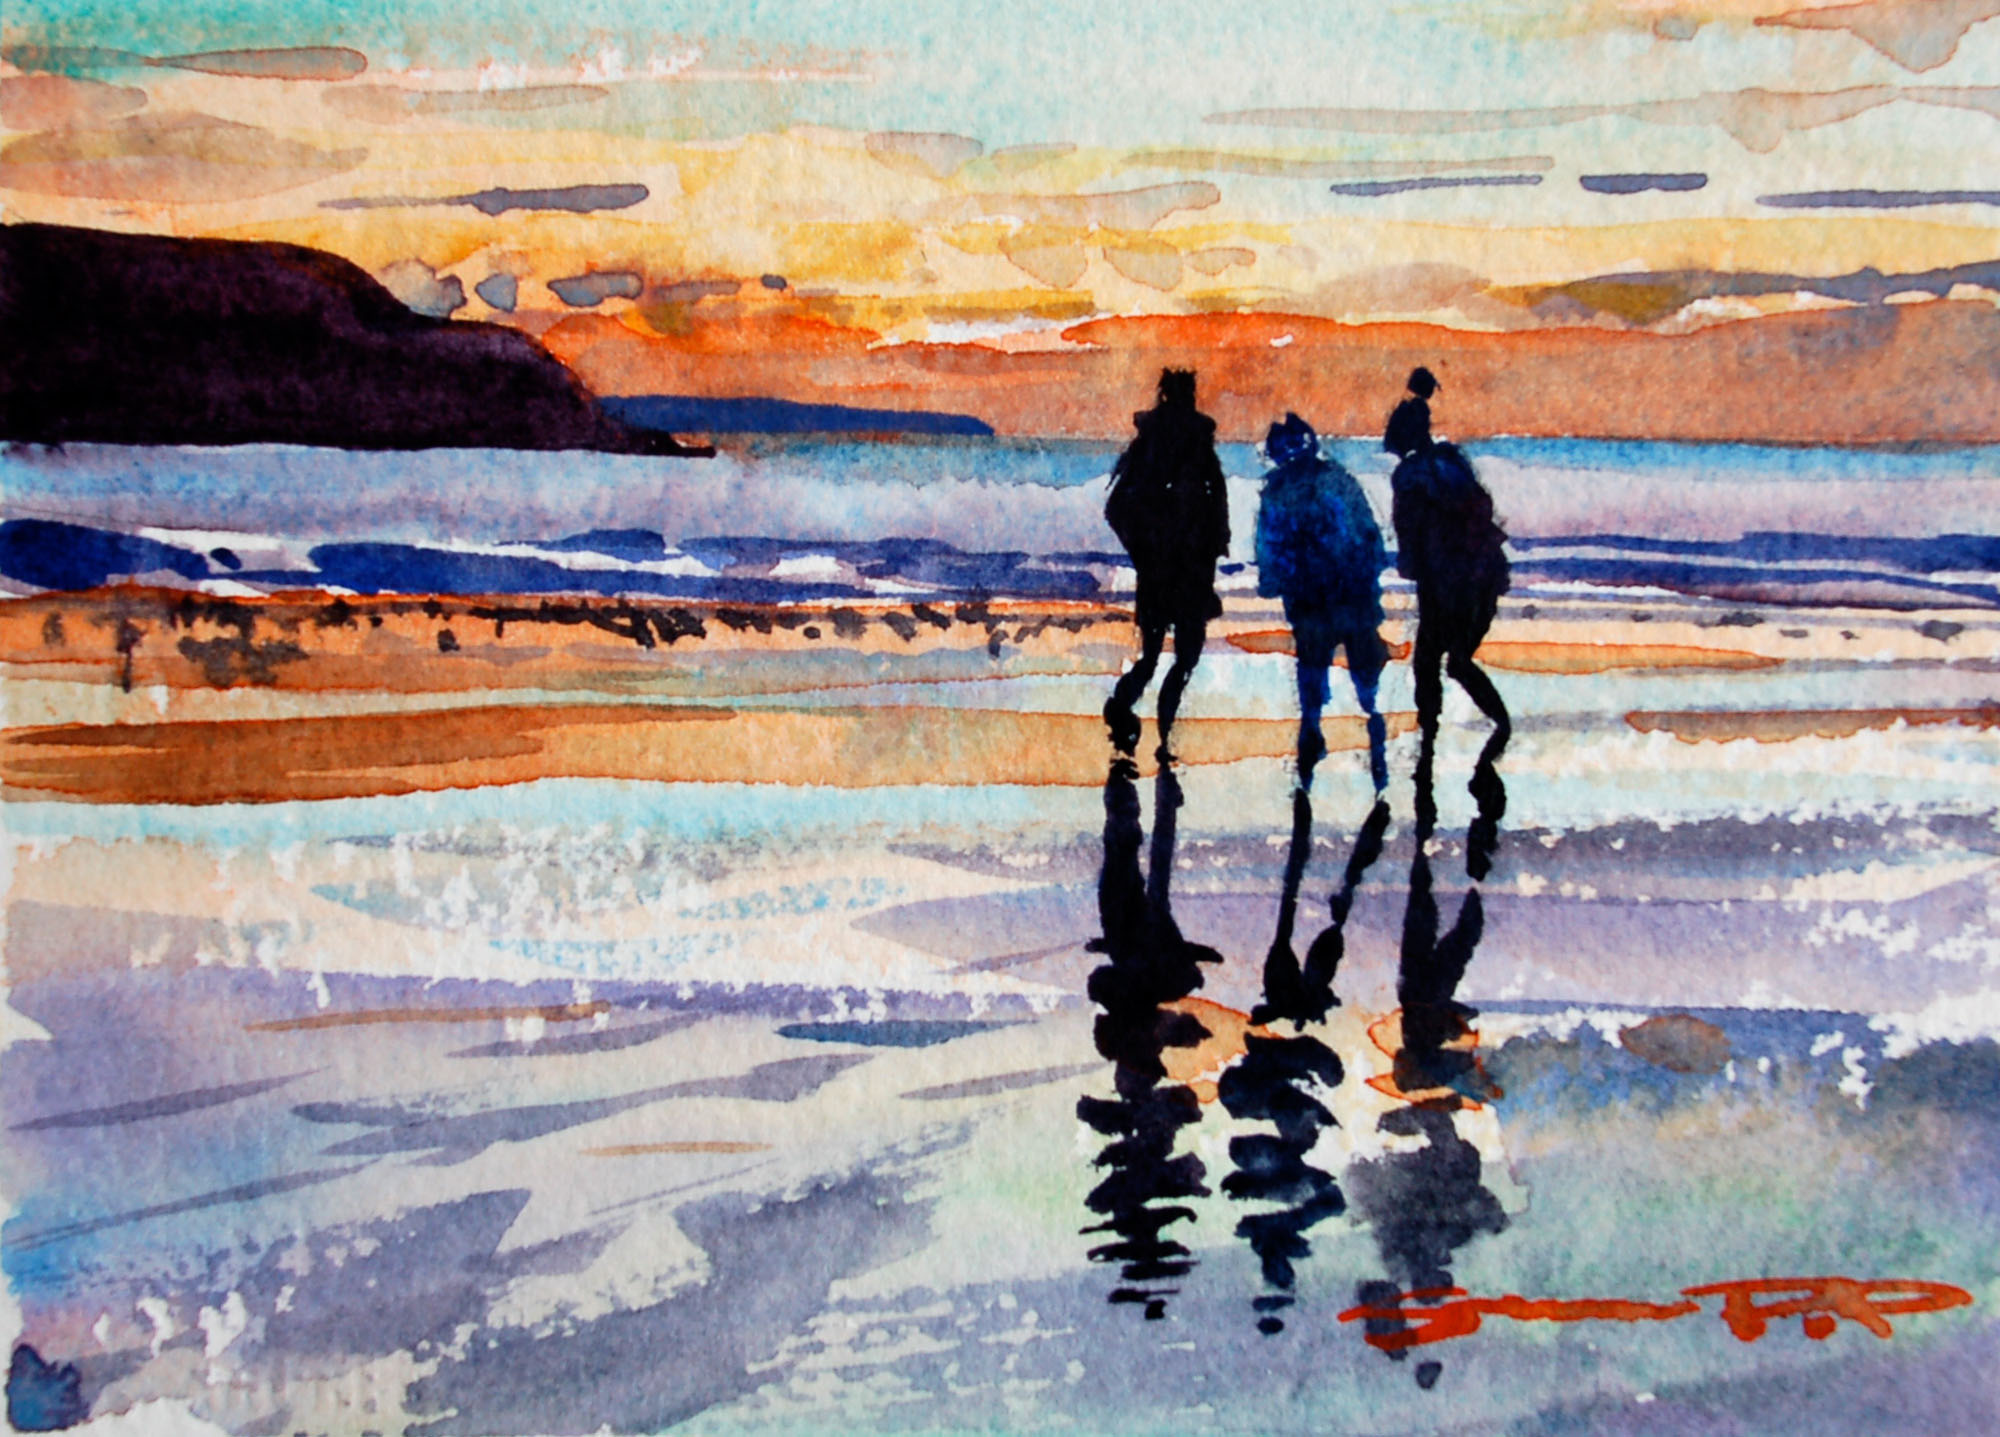 Sunset Friends woolacombe watercolour painting by Steve PP.